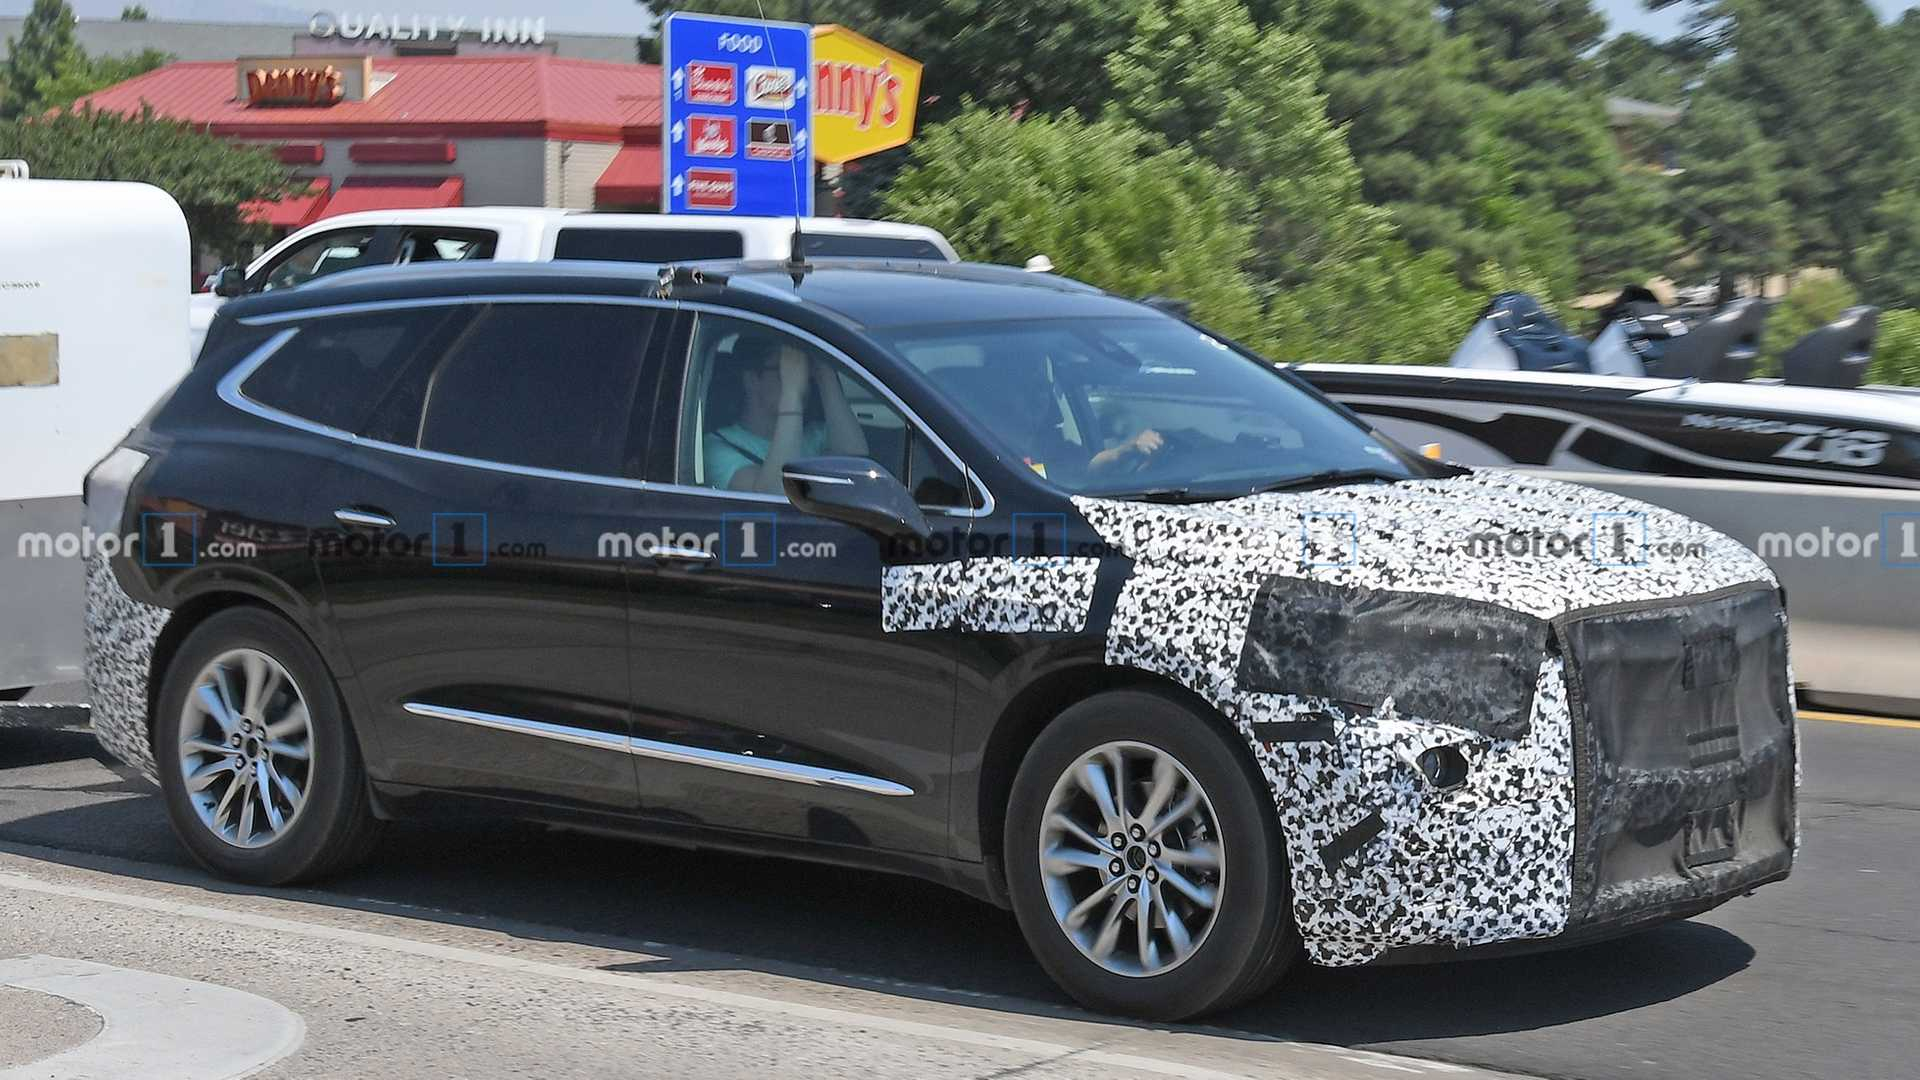 2021 Buick Enclave Spied For The First Time Build Your Own 2022 Buick Enclave